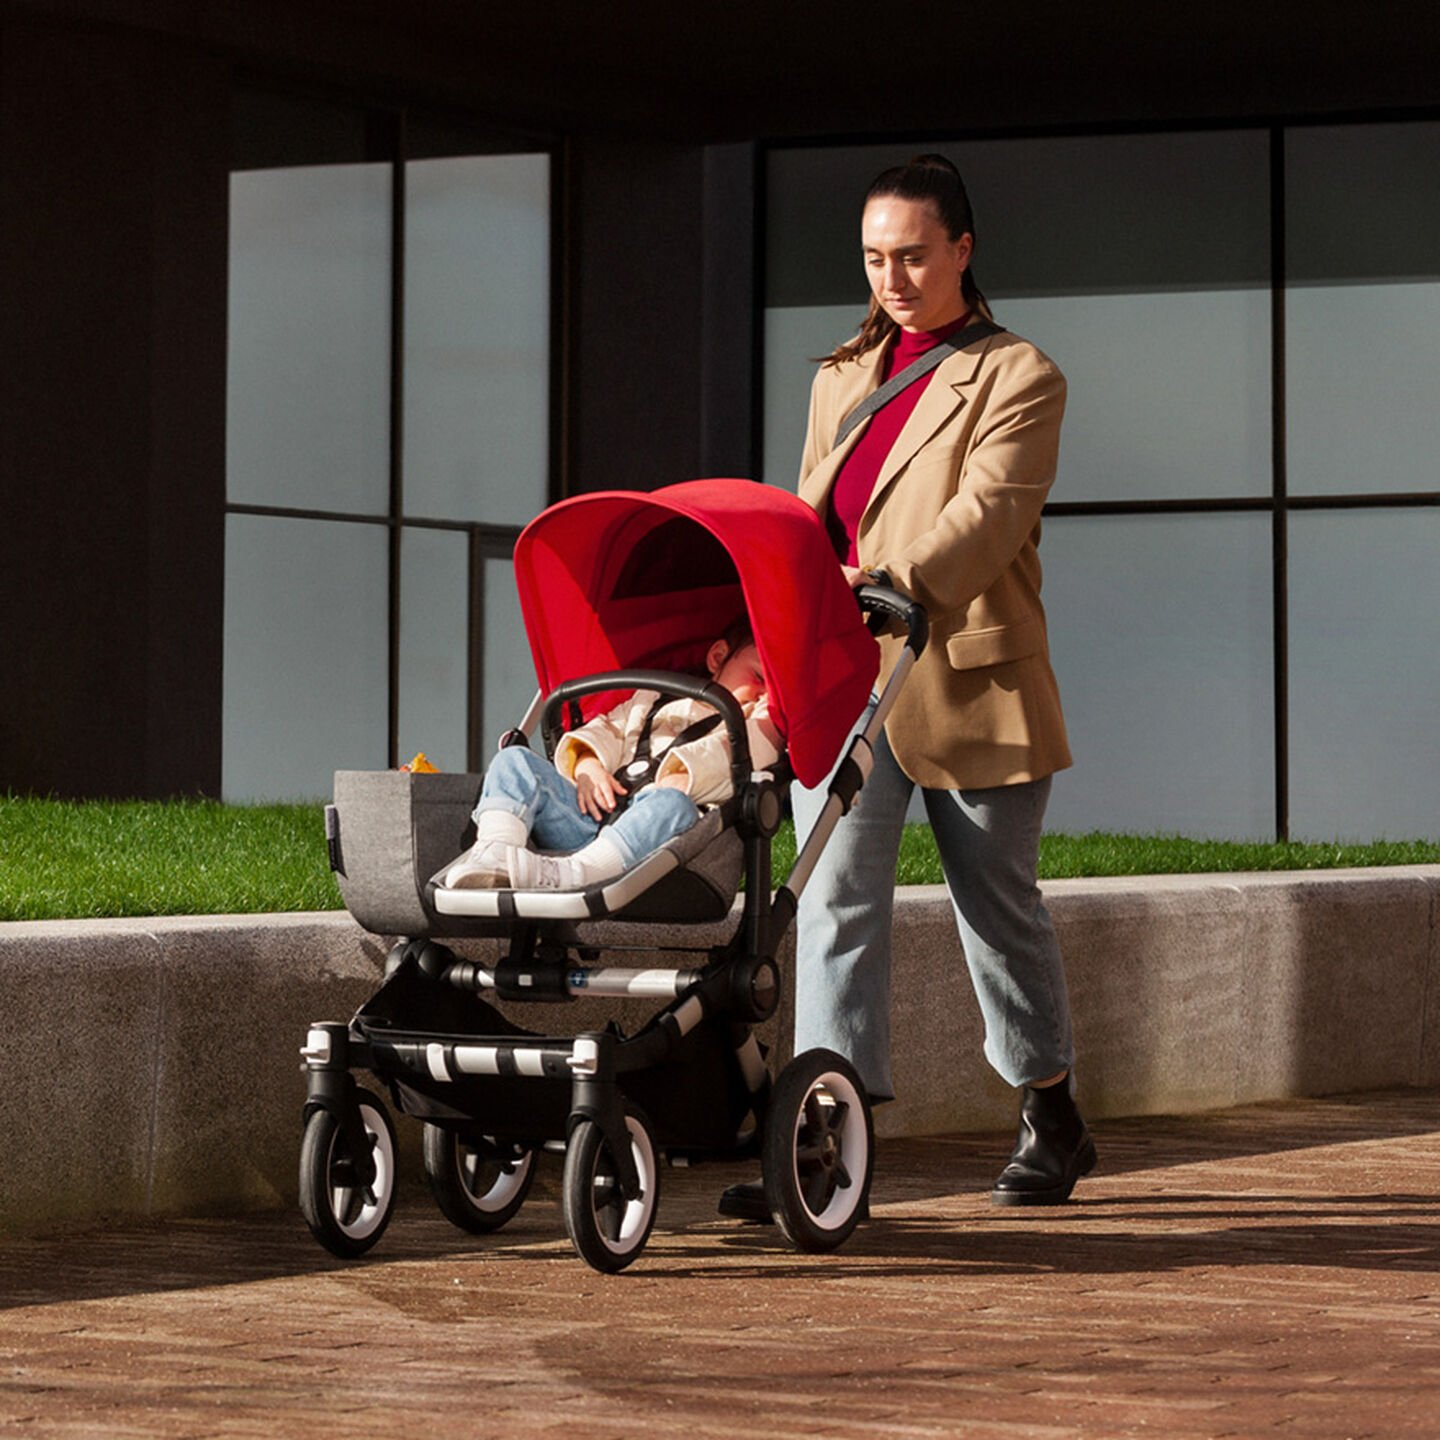 Woman walking with child in stroller